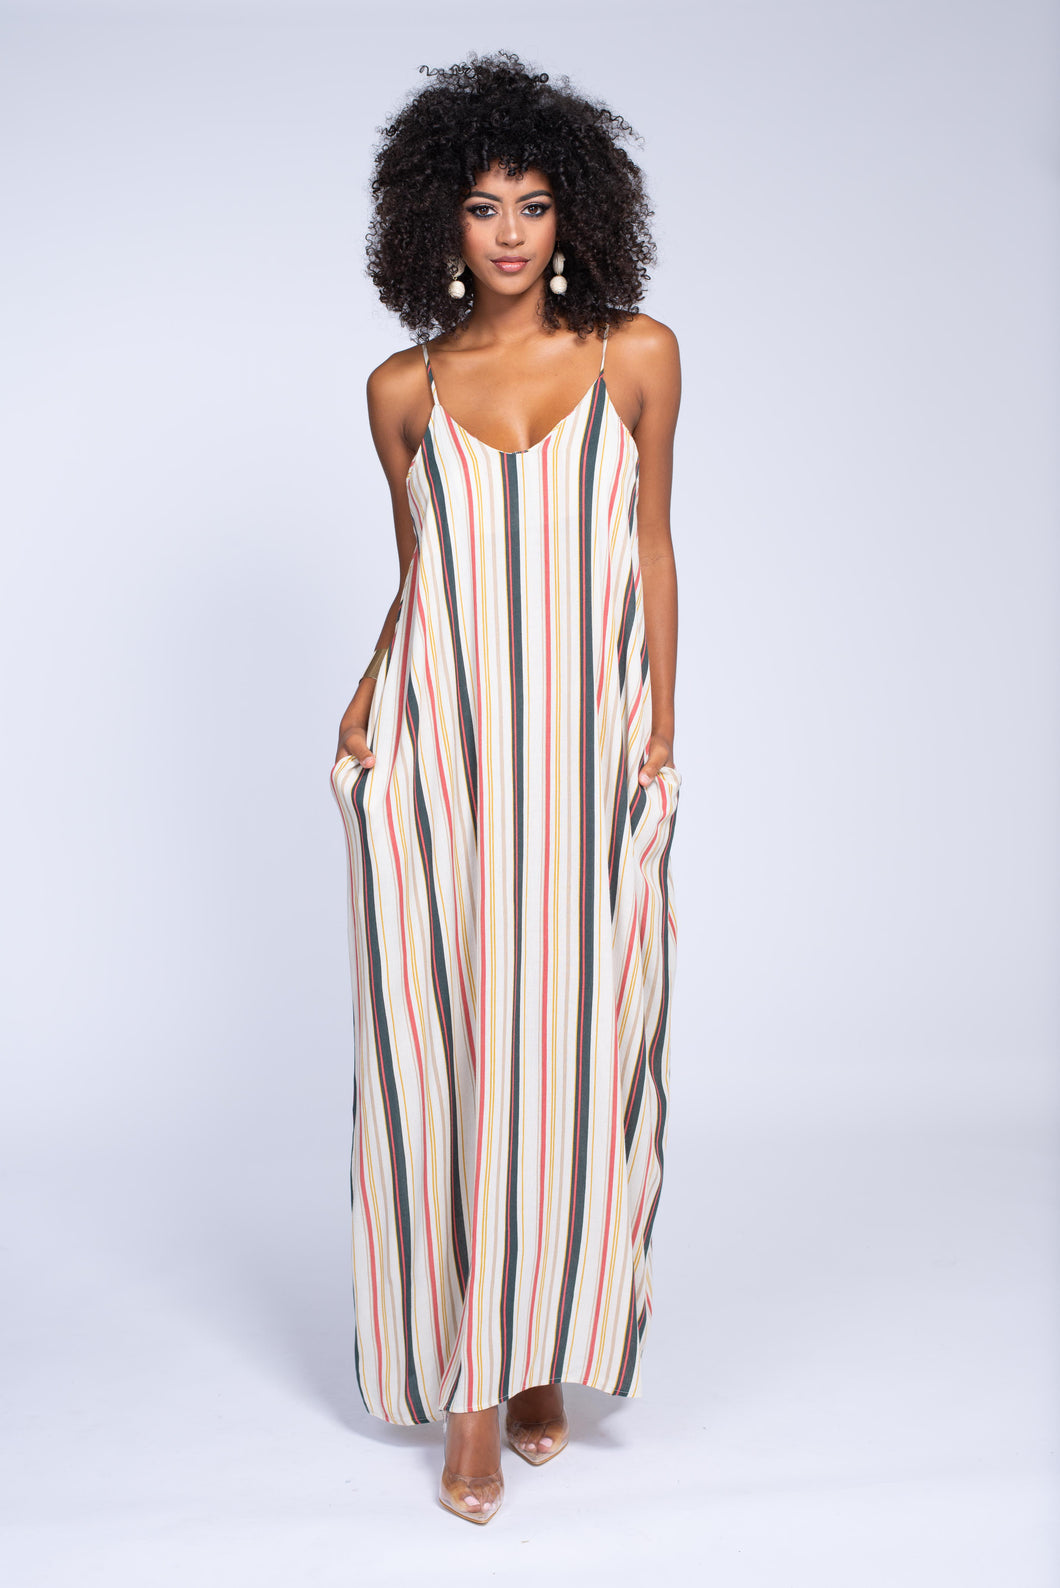 From All Angles Maxi Dress